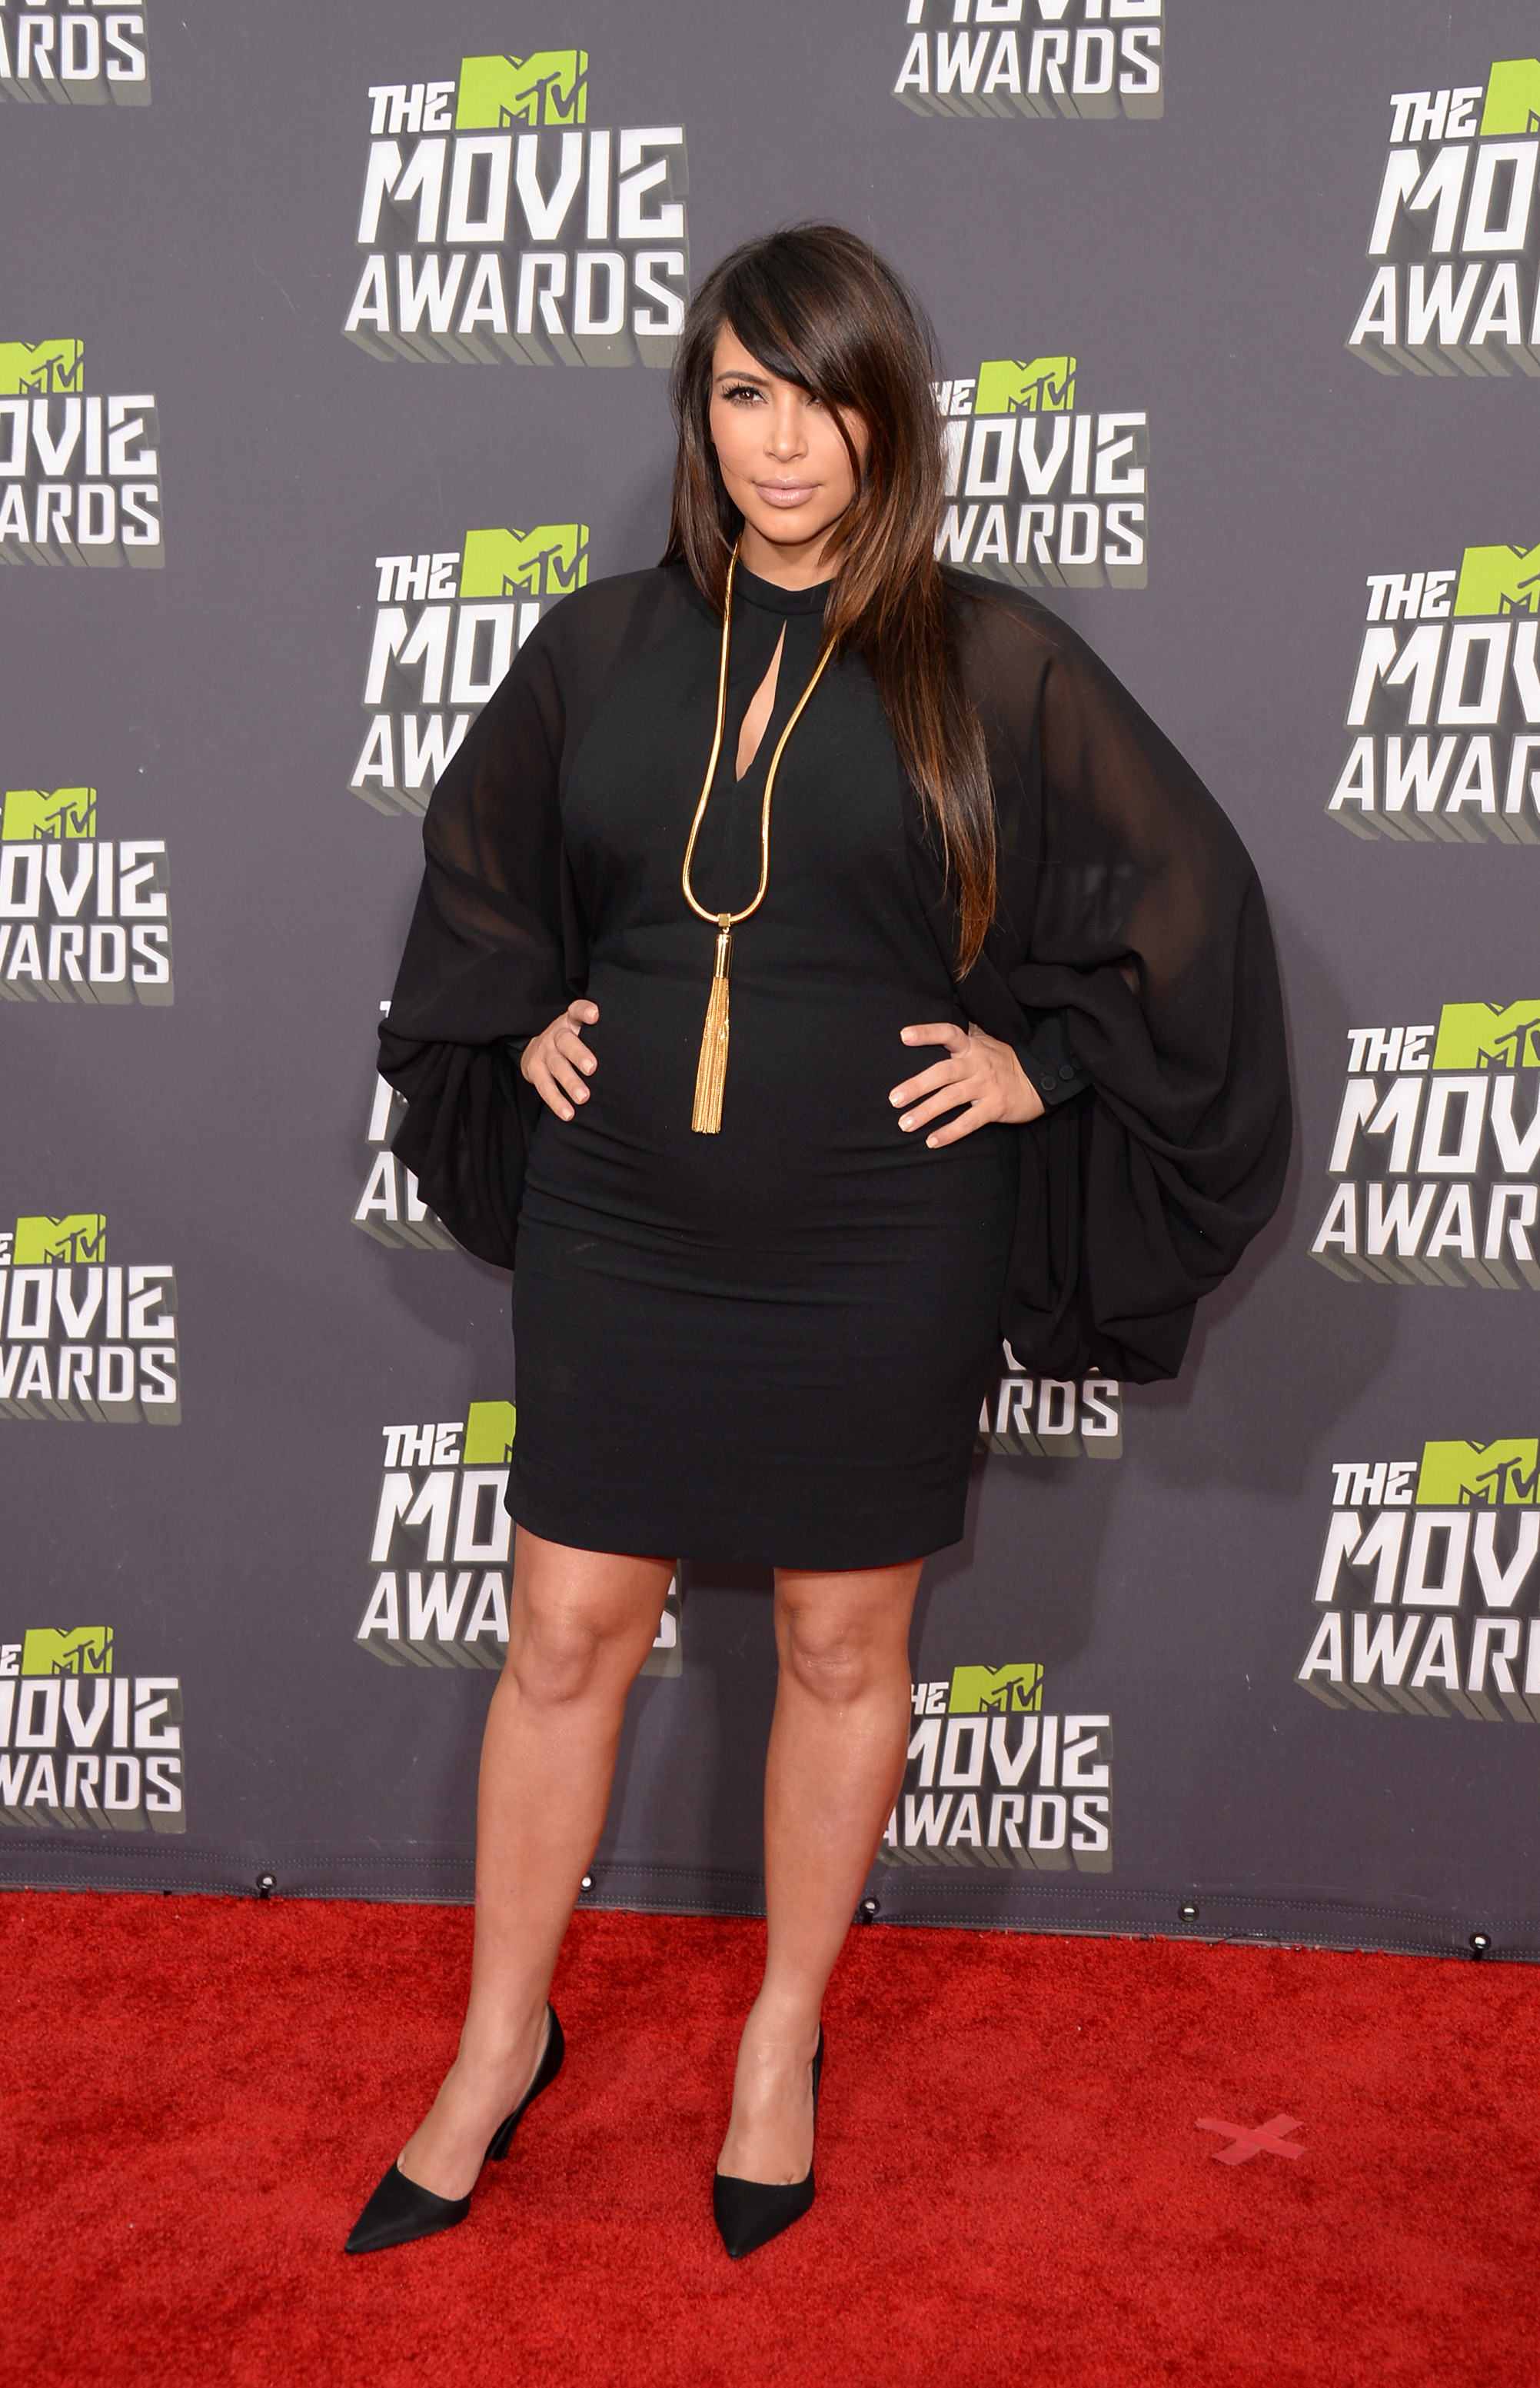 Kim Kardashian at the MTV Movie Awards!